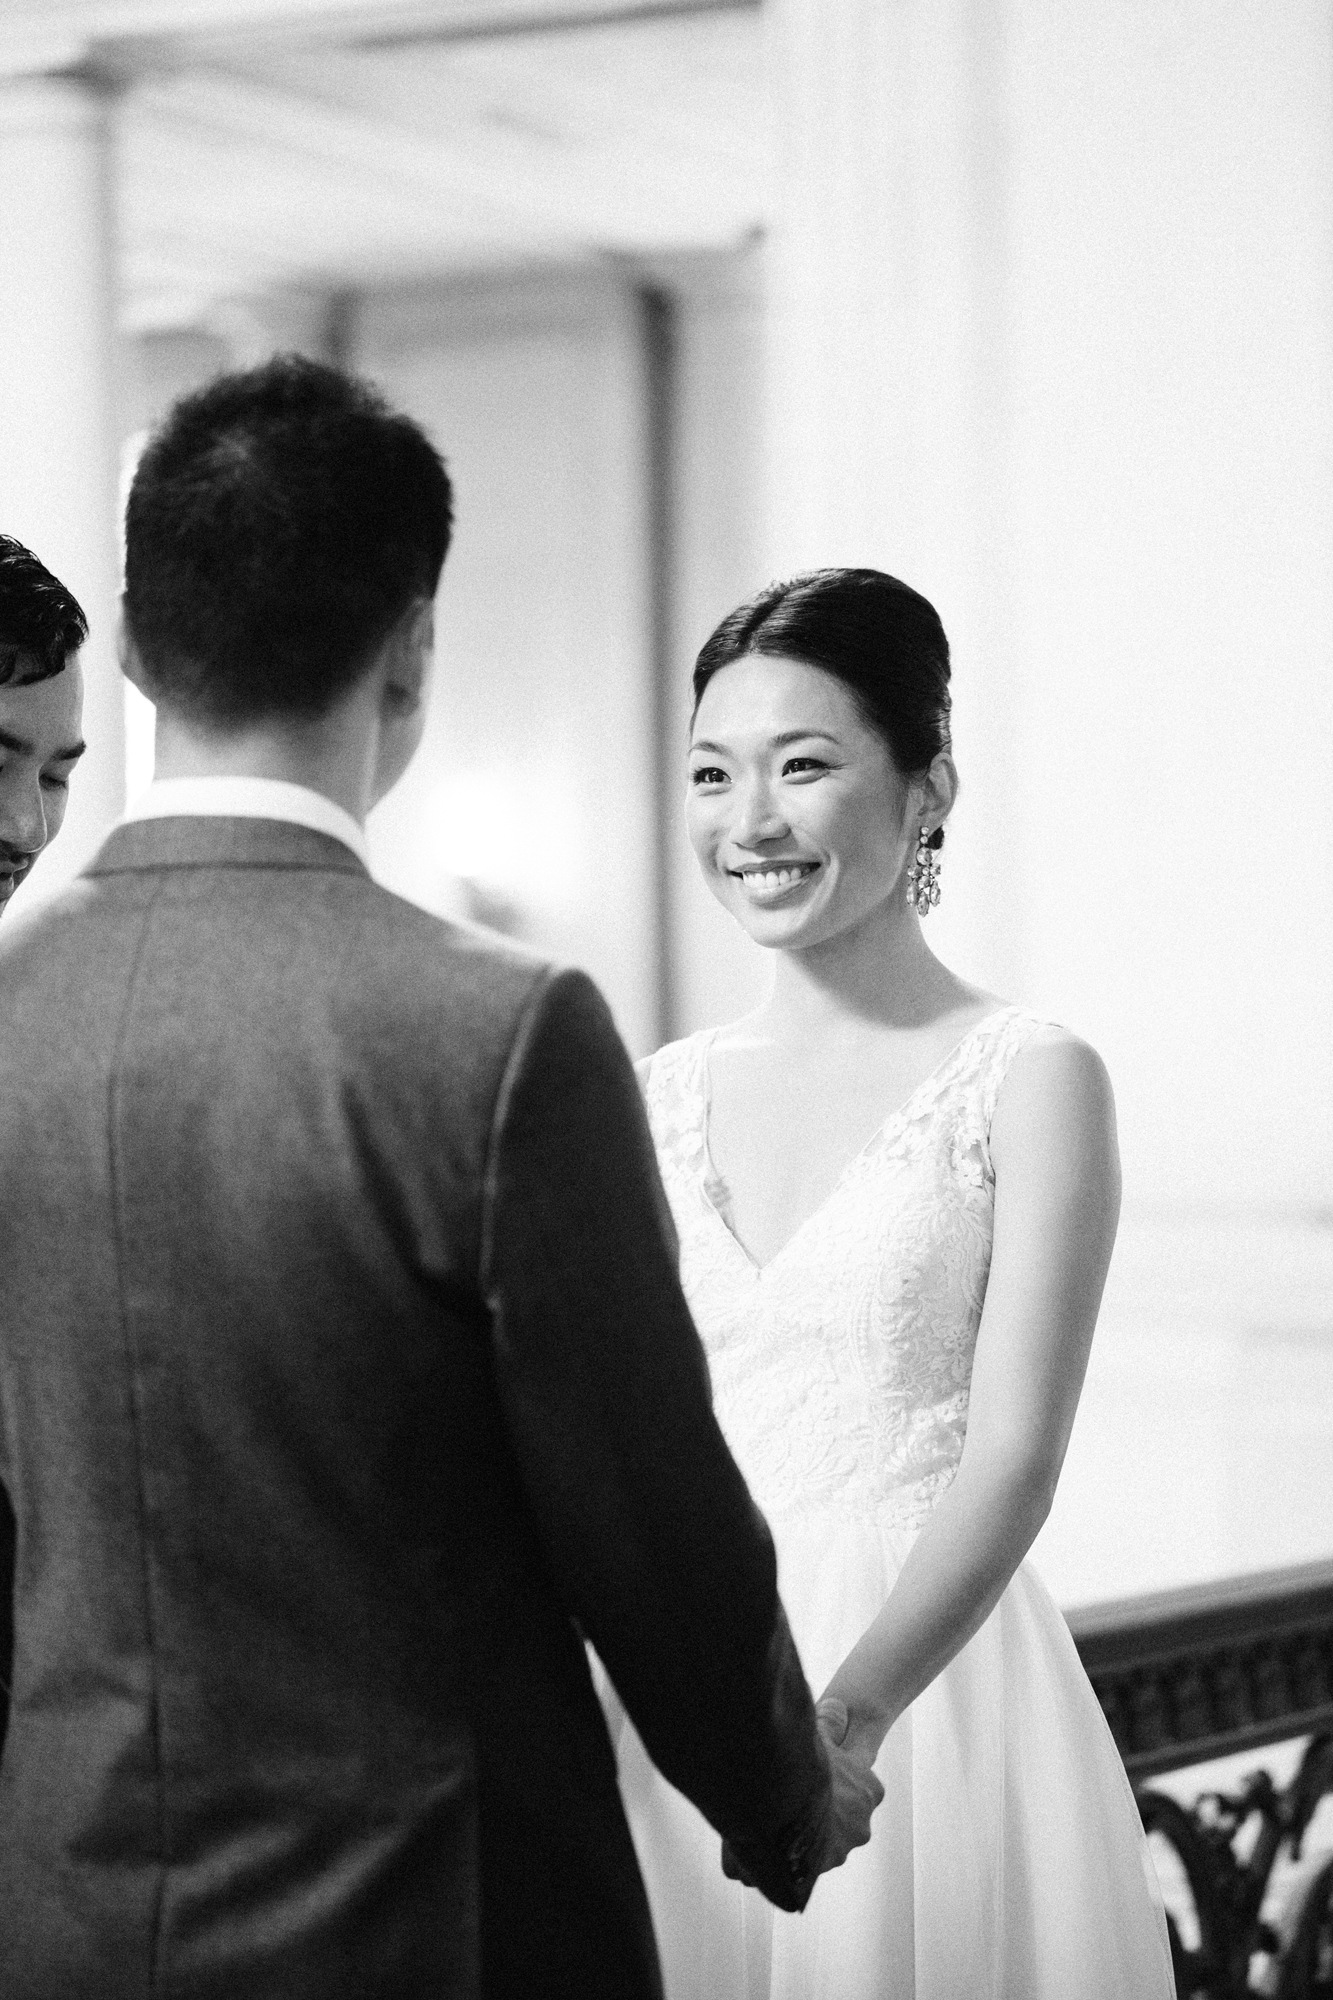 helen_kevin_wedding-39.jpg